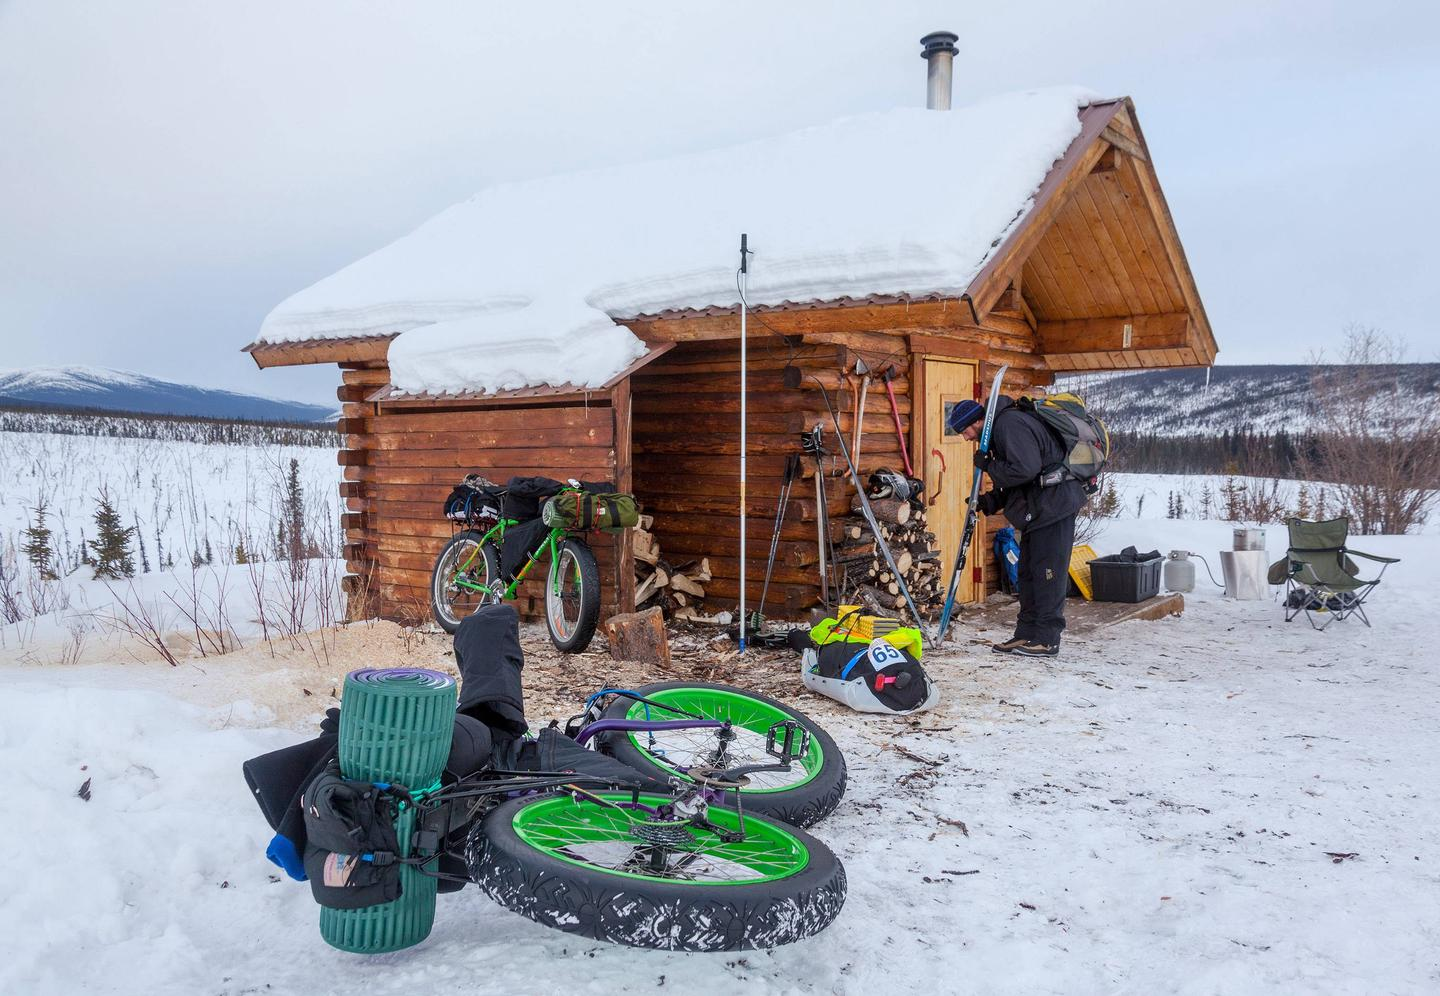 A man works on his skis next to parked bicycles at a log cabin.Bicyclists and skiers find cozy lodging at Cache Mountain Cabin.